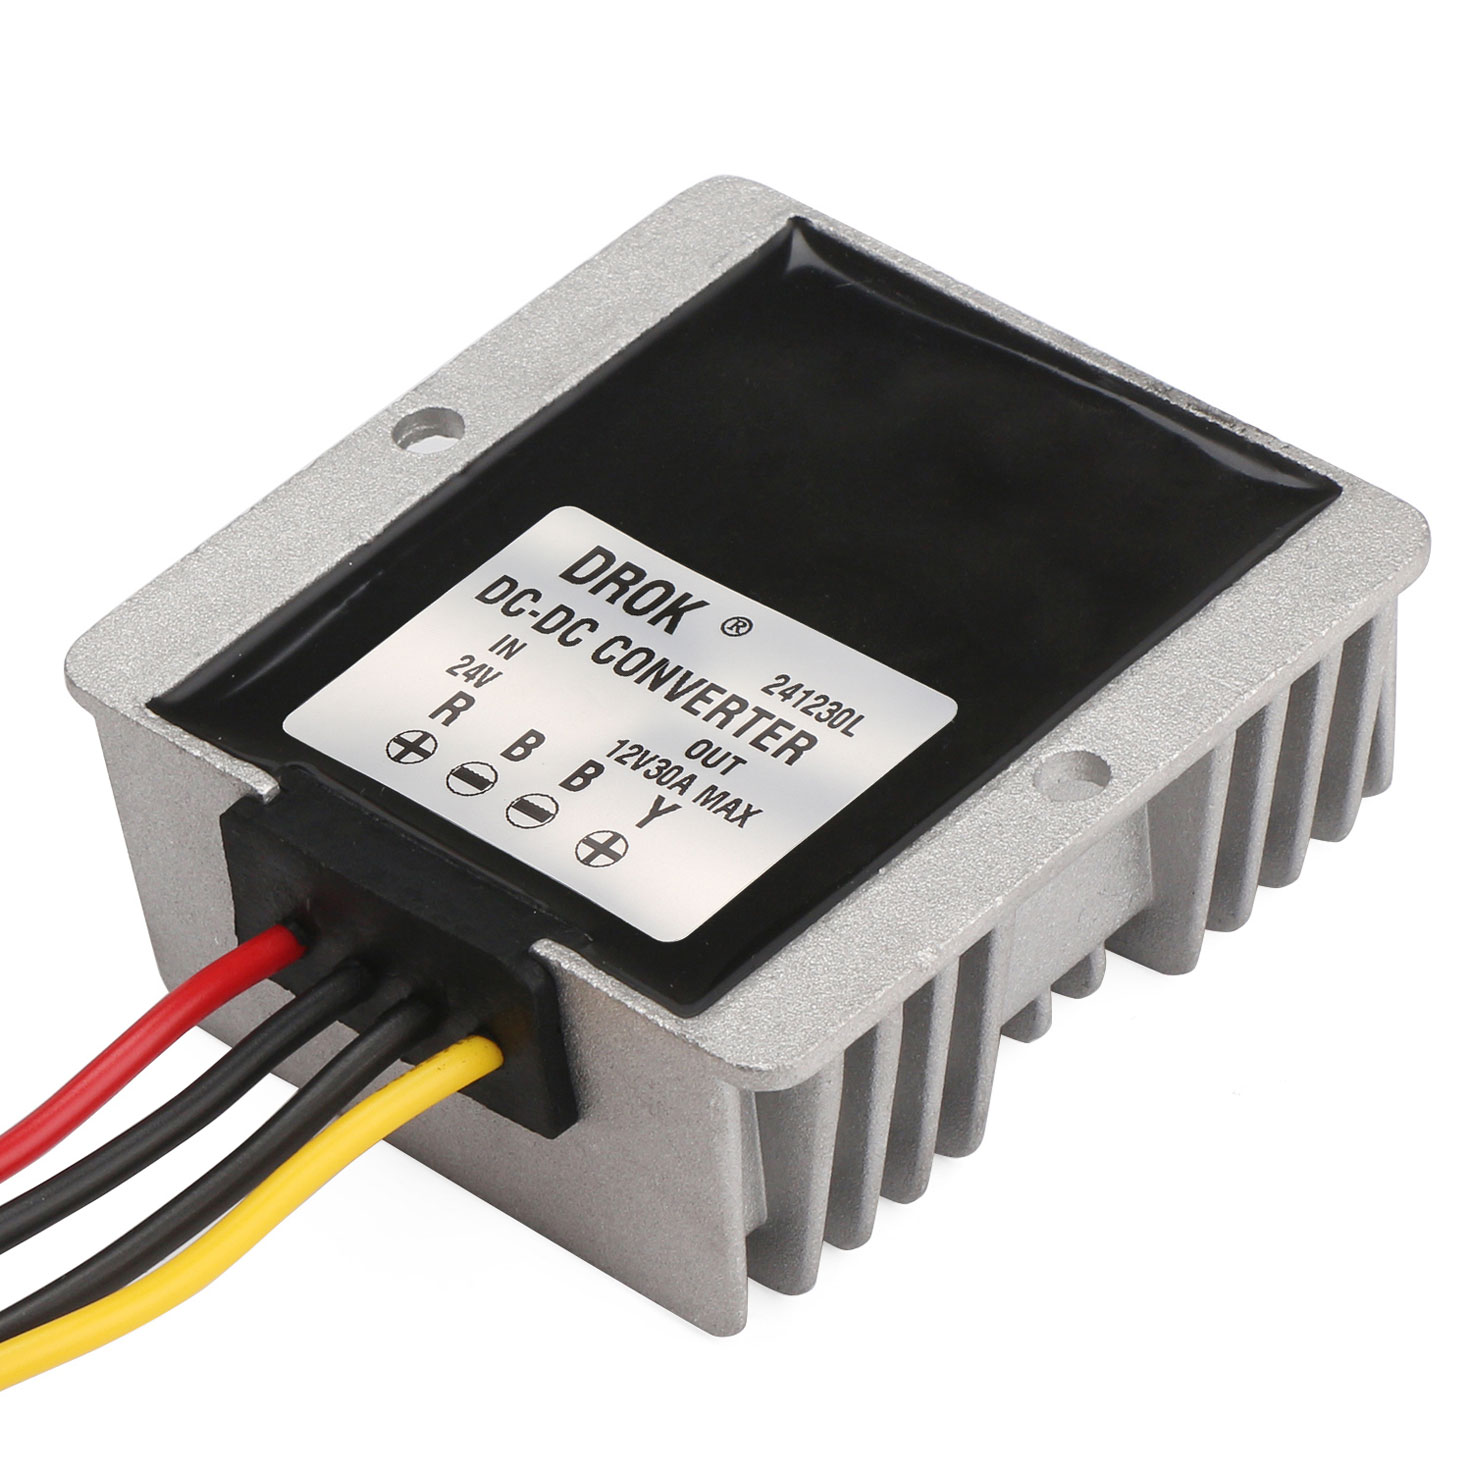 New Step-up DC Converter 12V to 24V 30A 720W Boost Power Supply Module Car